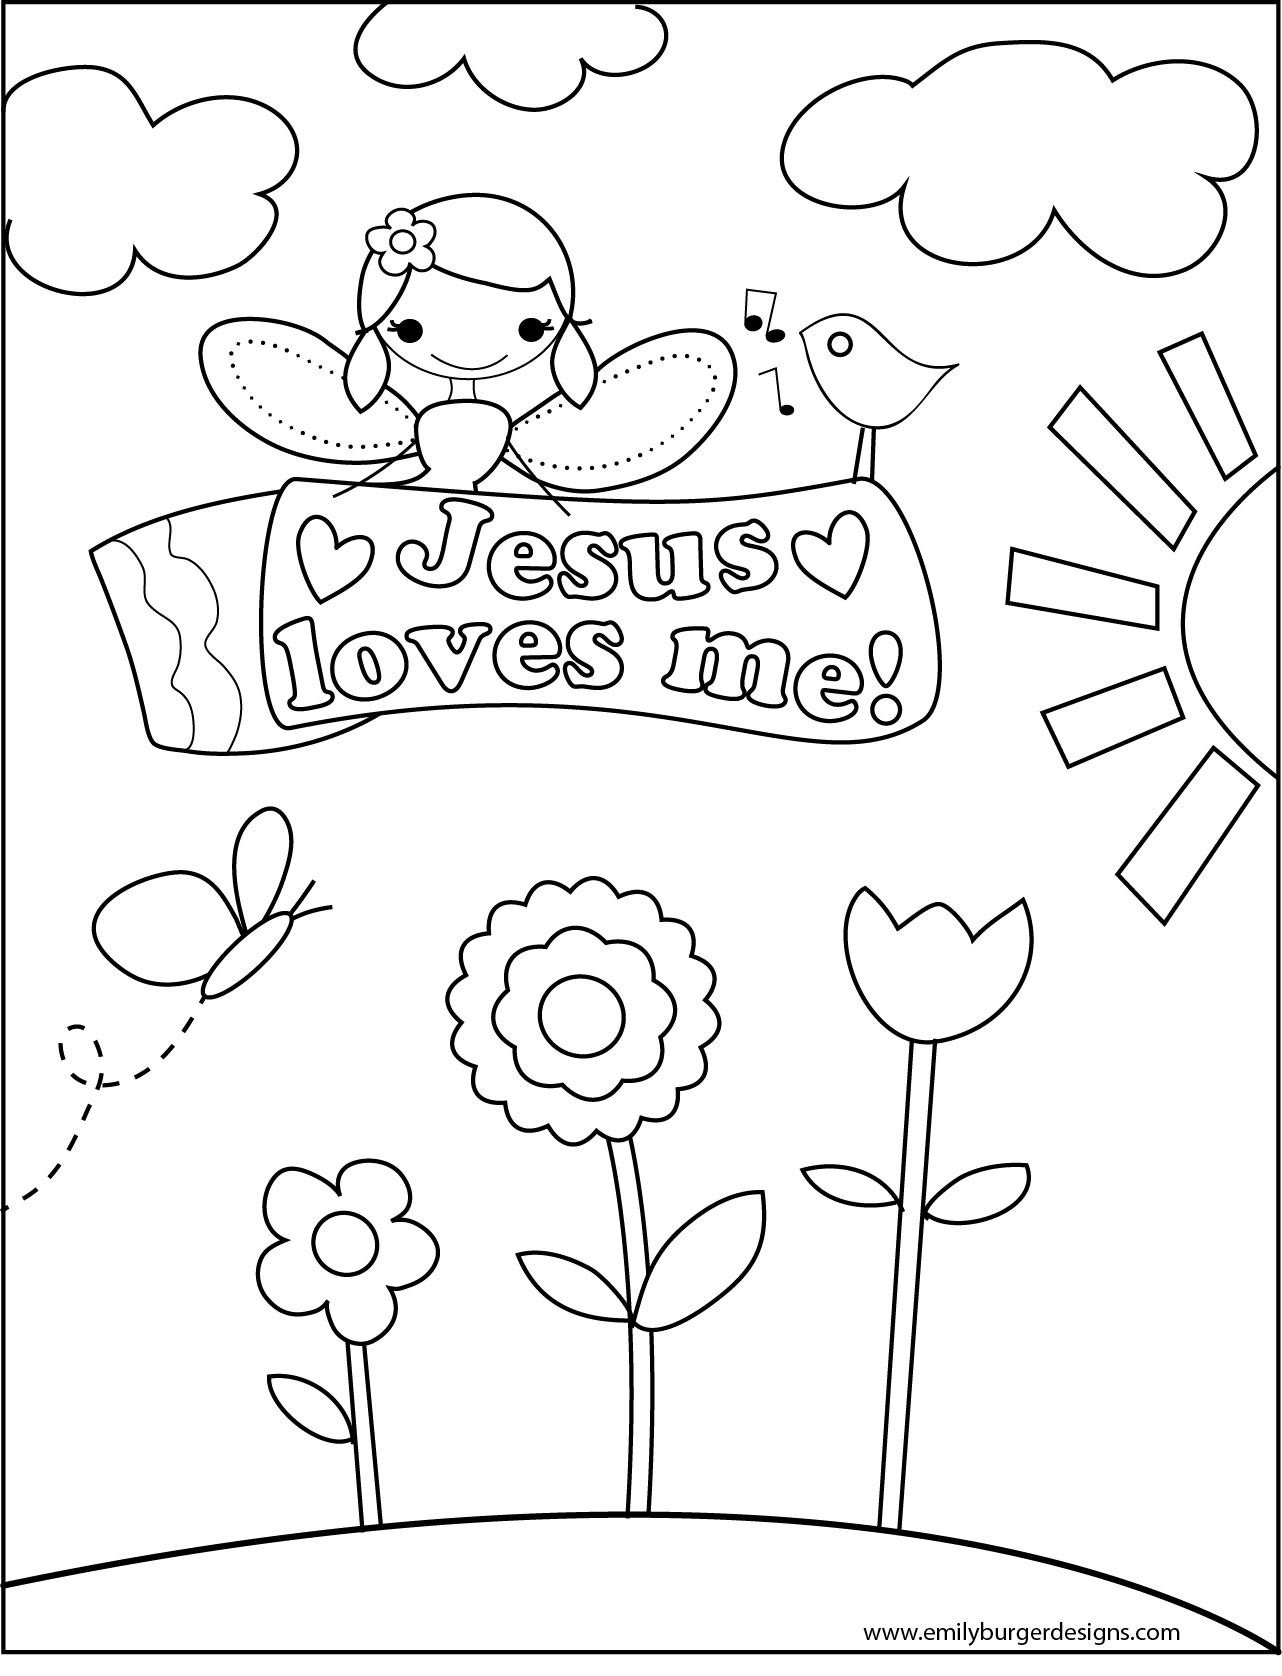 1282x1676 Catchy Jesus Loves Me Coloring Page Preschool In Humorous